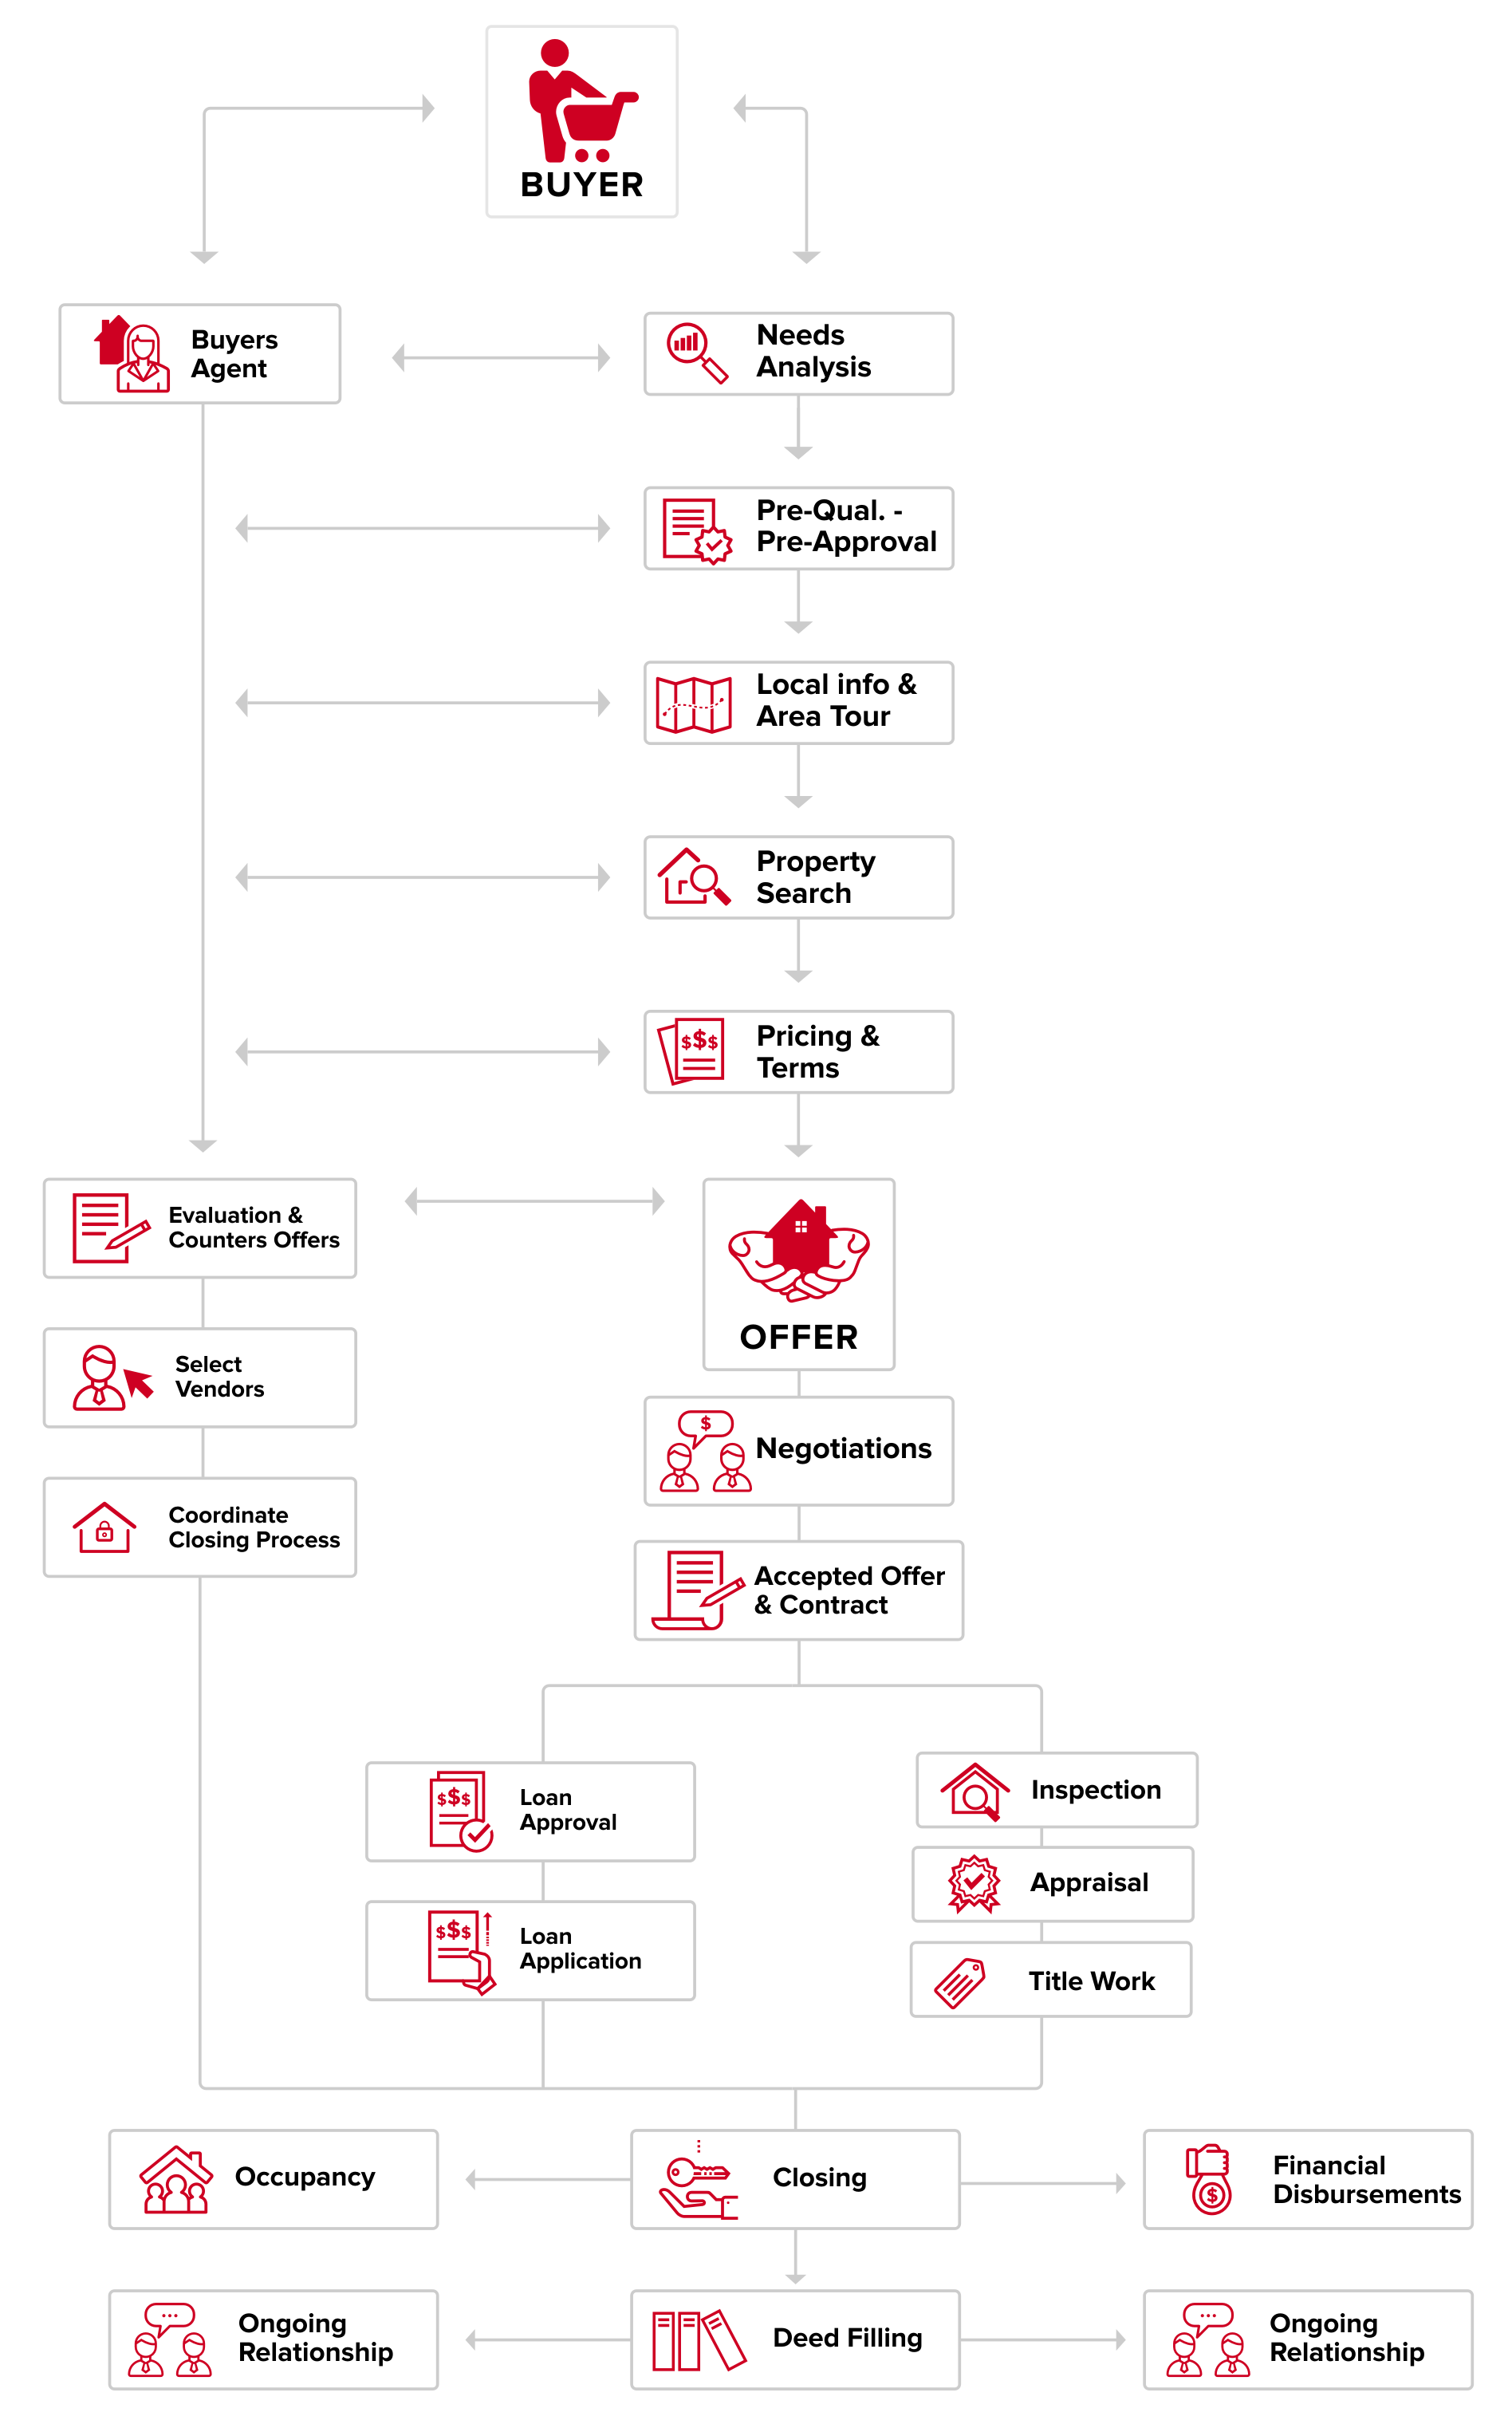 flow chart depicting the realtor's role in the home buying process